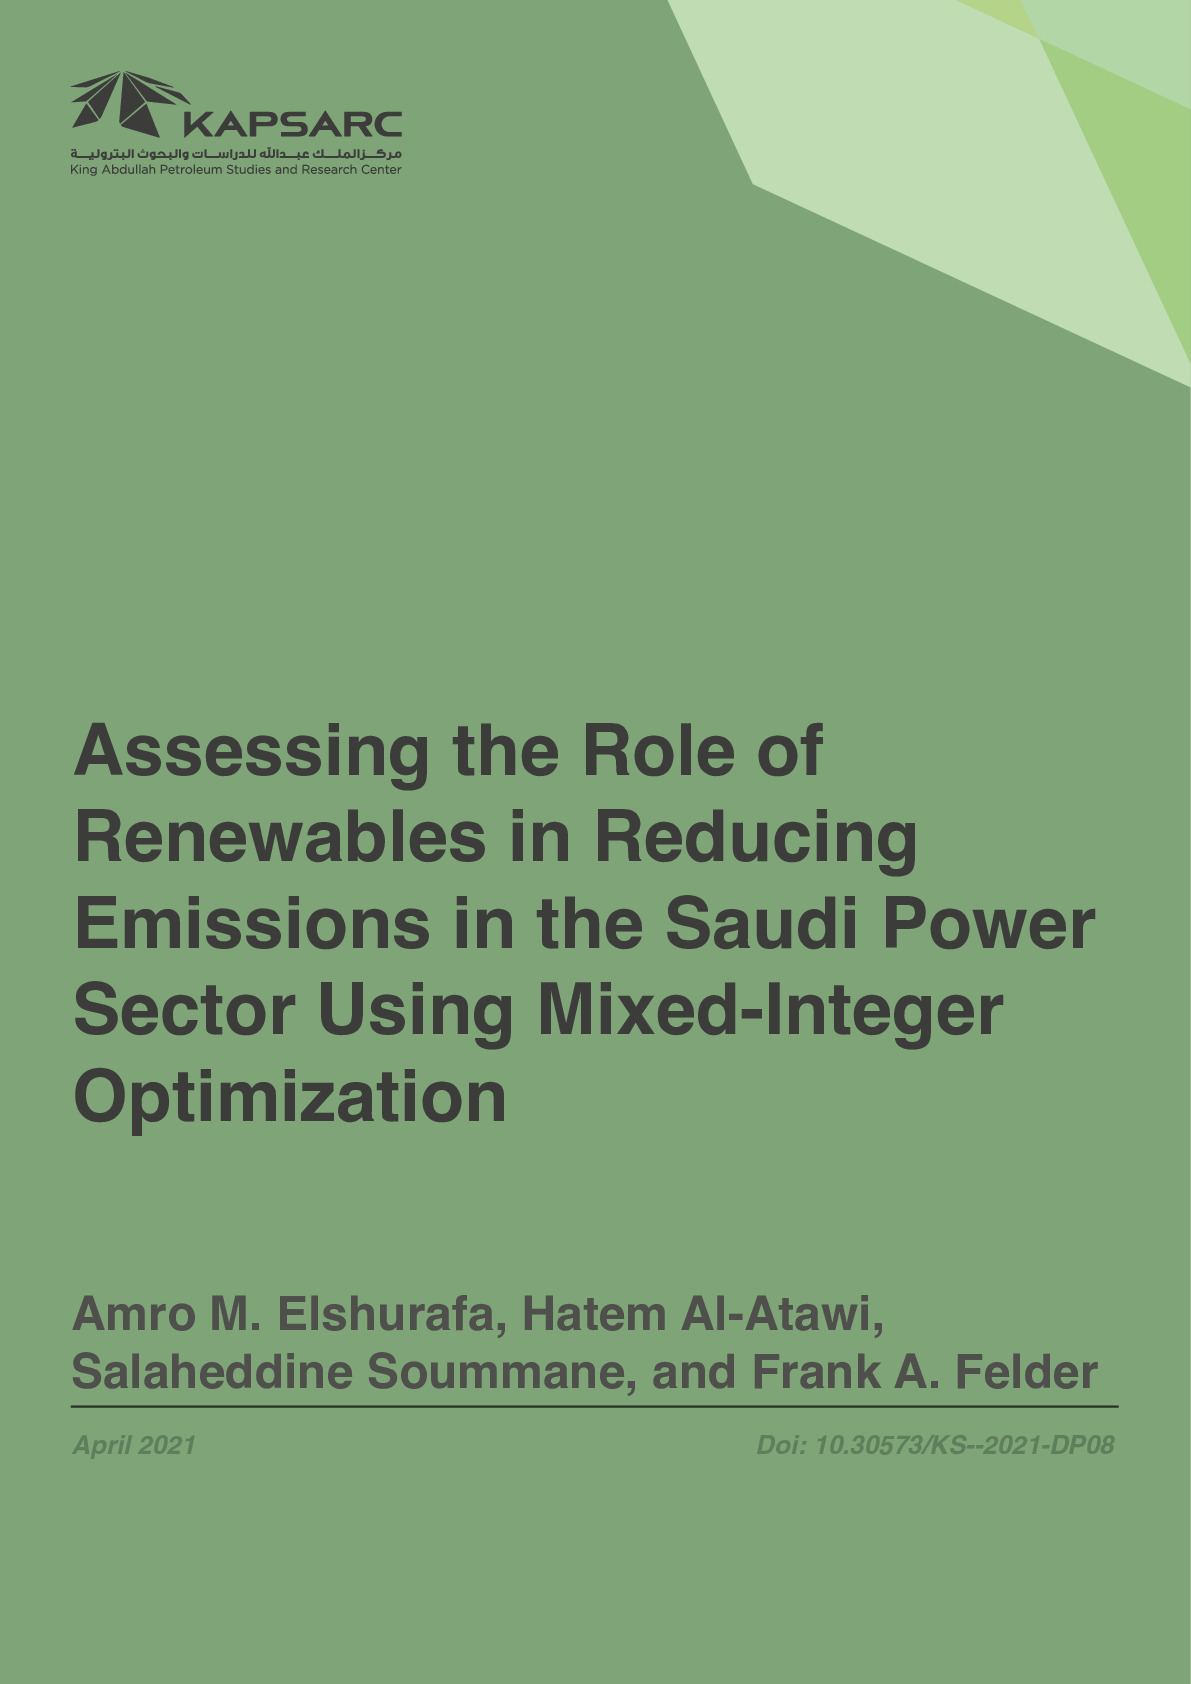 Assessing the Role of Renewables in Reducing Emissions in the Saudi Power Sector Using Mixed-Integer Optimization